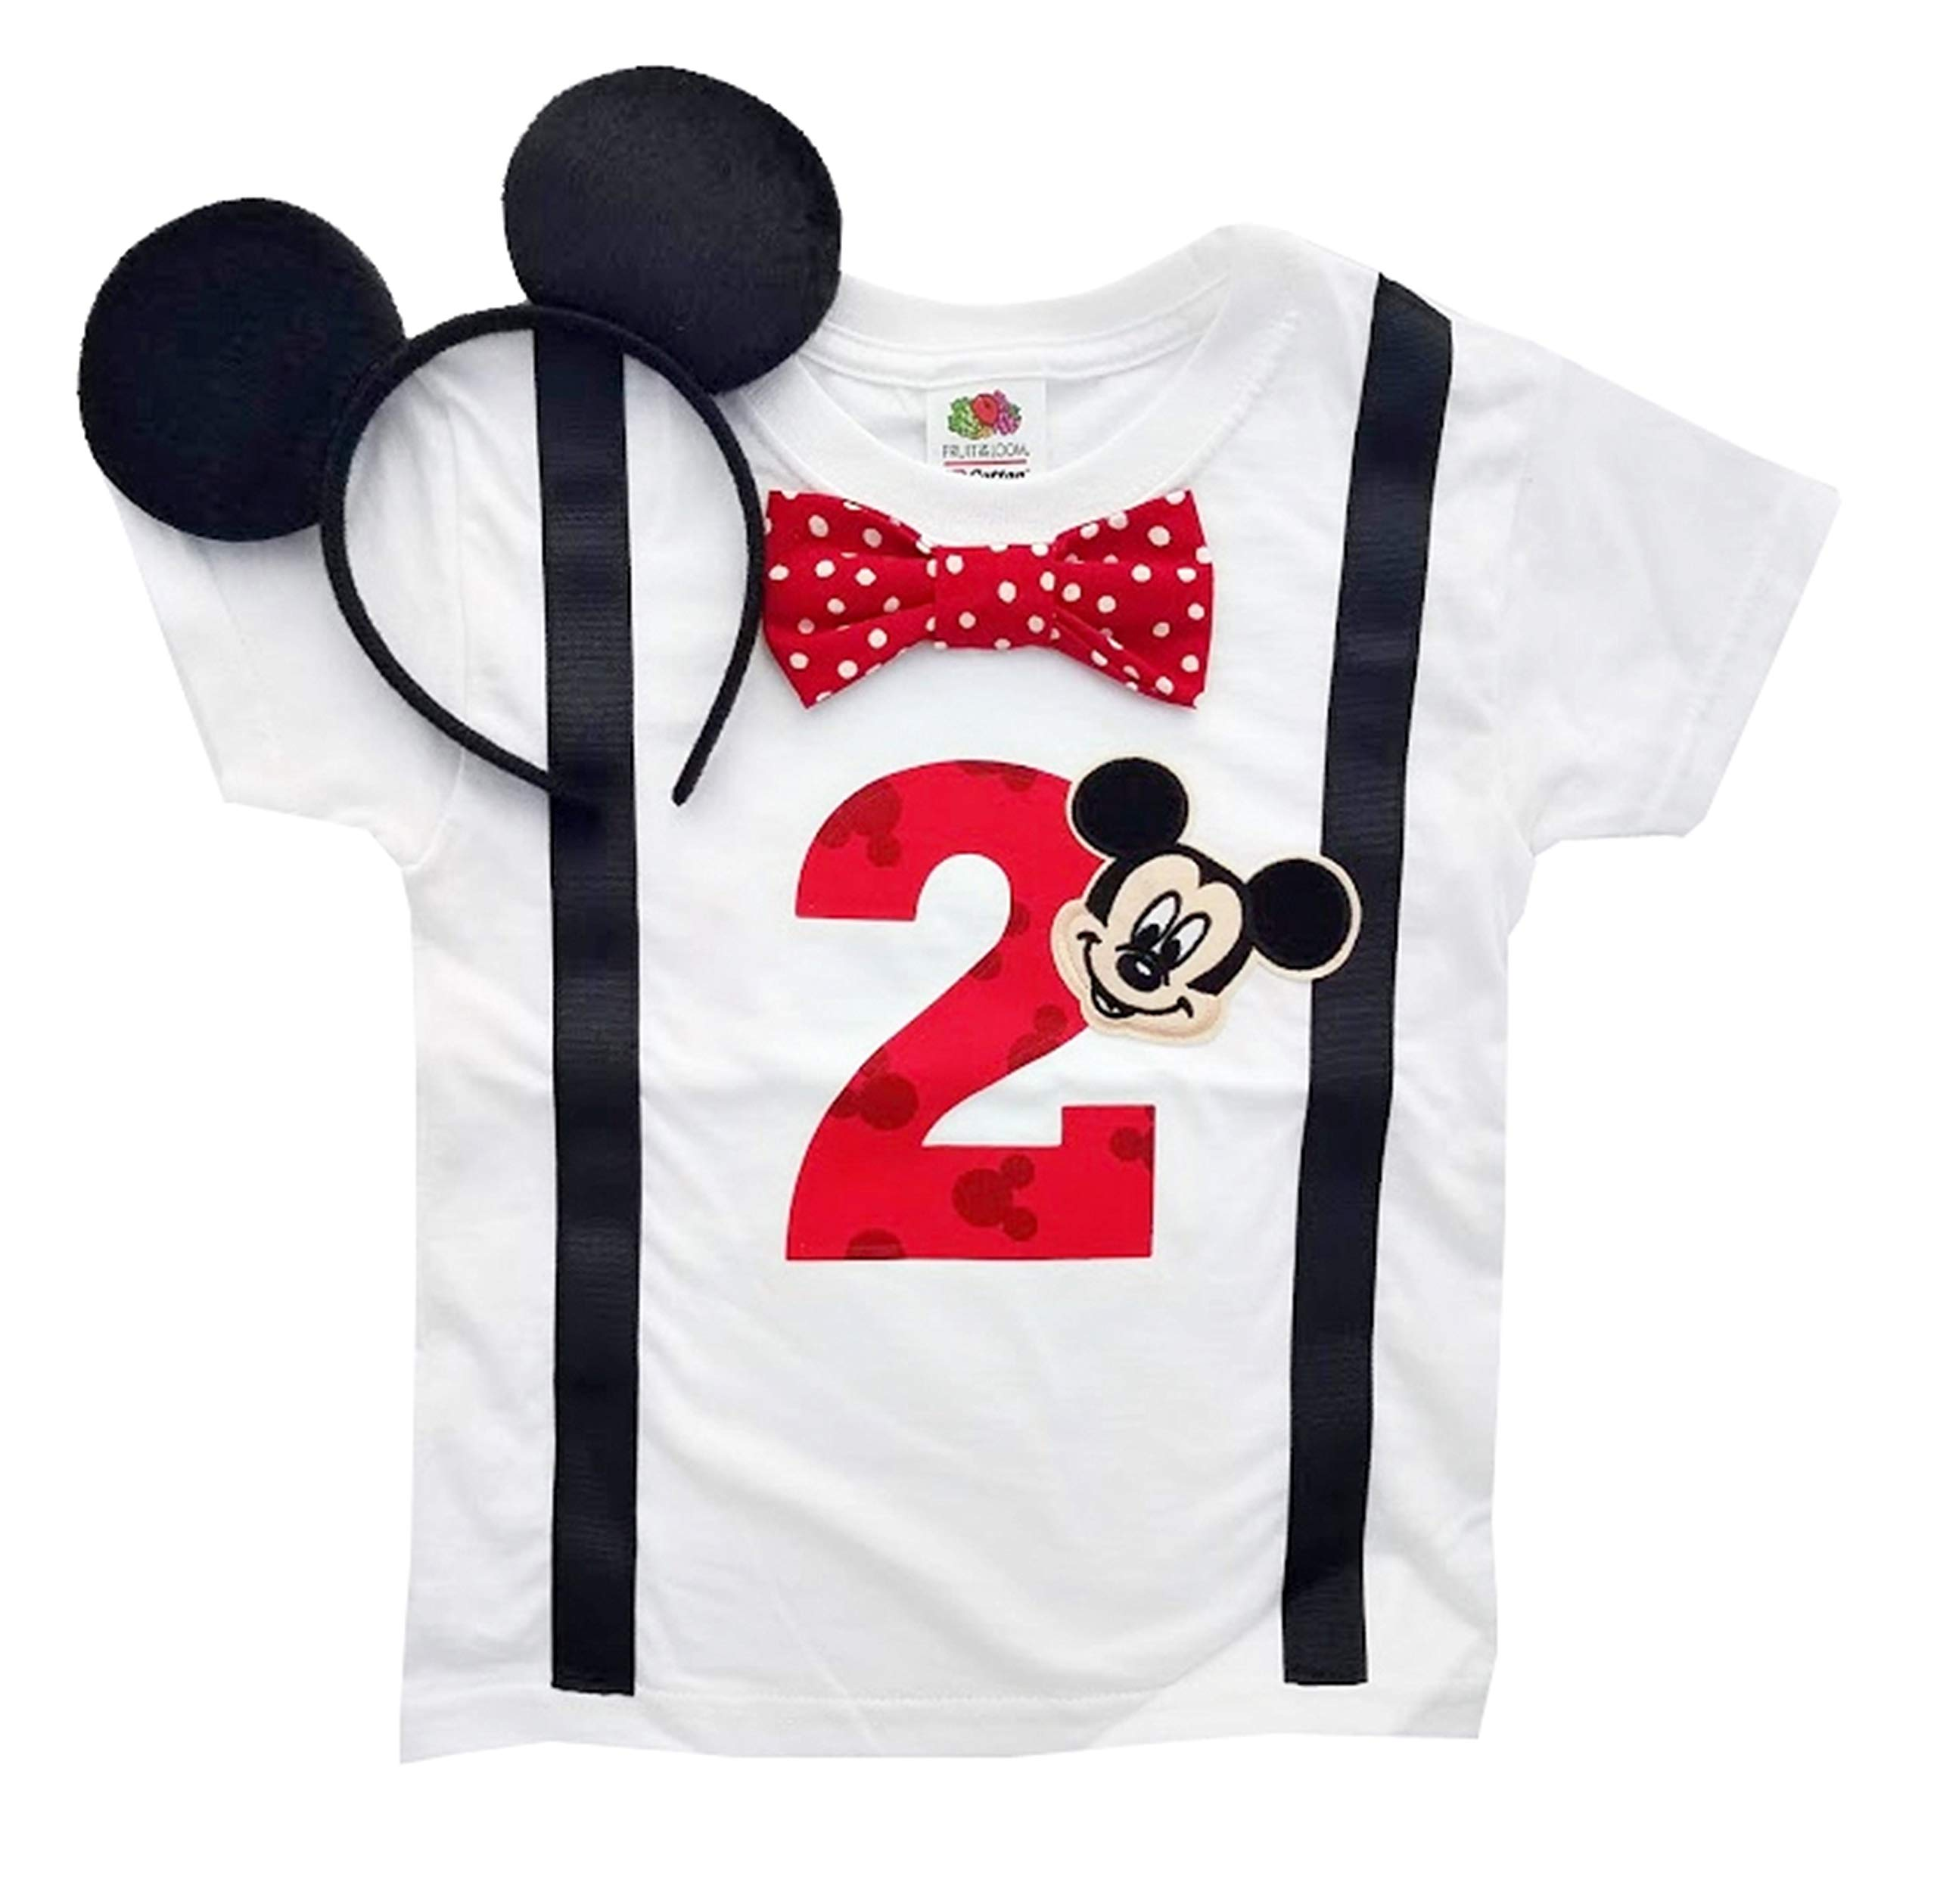 2nd Birthday Shirt Boys Mickey Mouse Tee (2T, White-Black-Red Dot with Headband) by Perfect Pairz